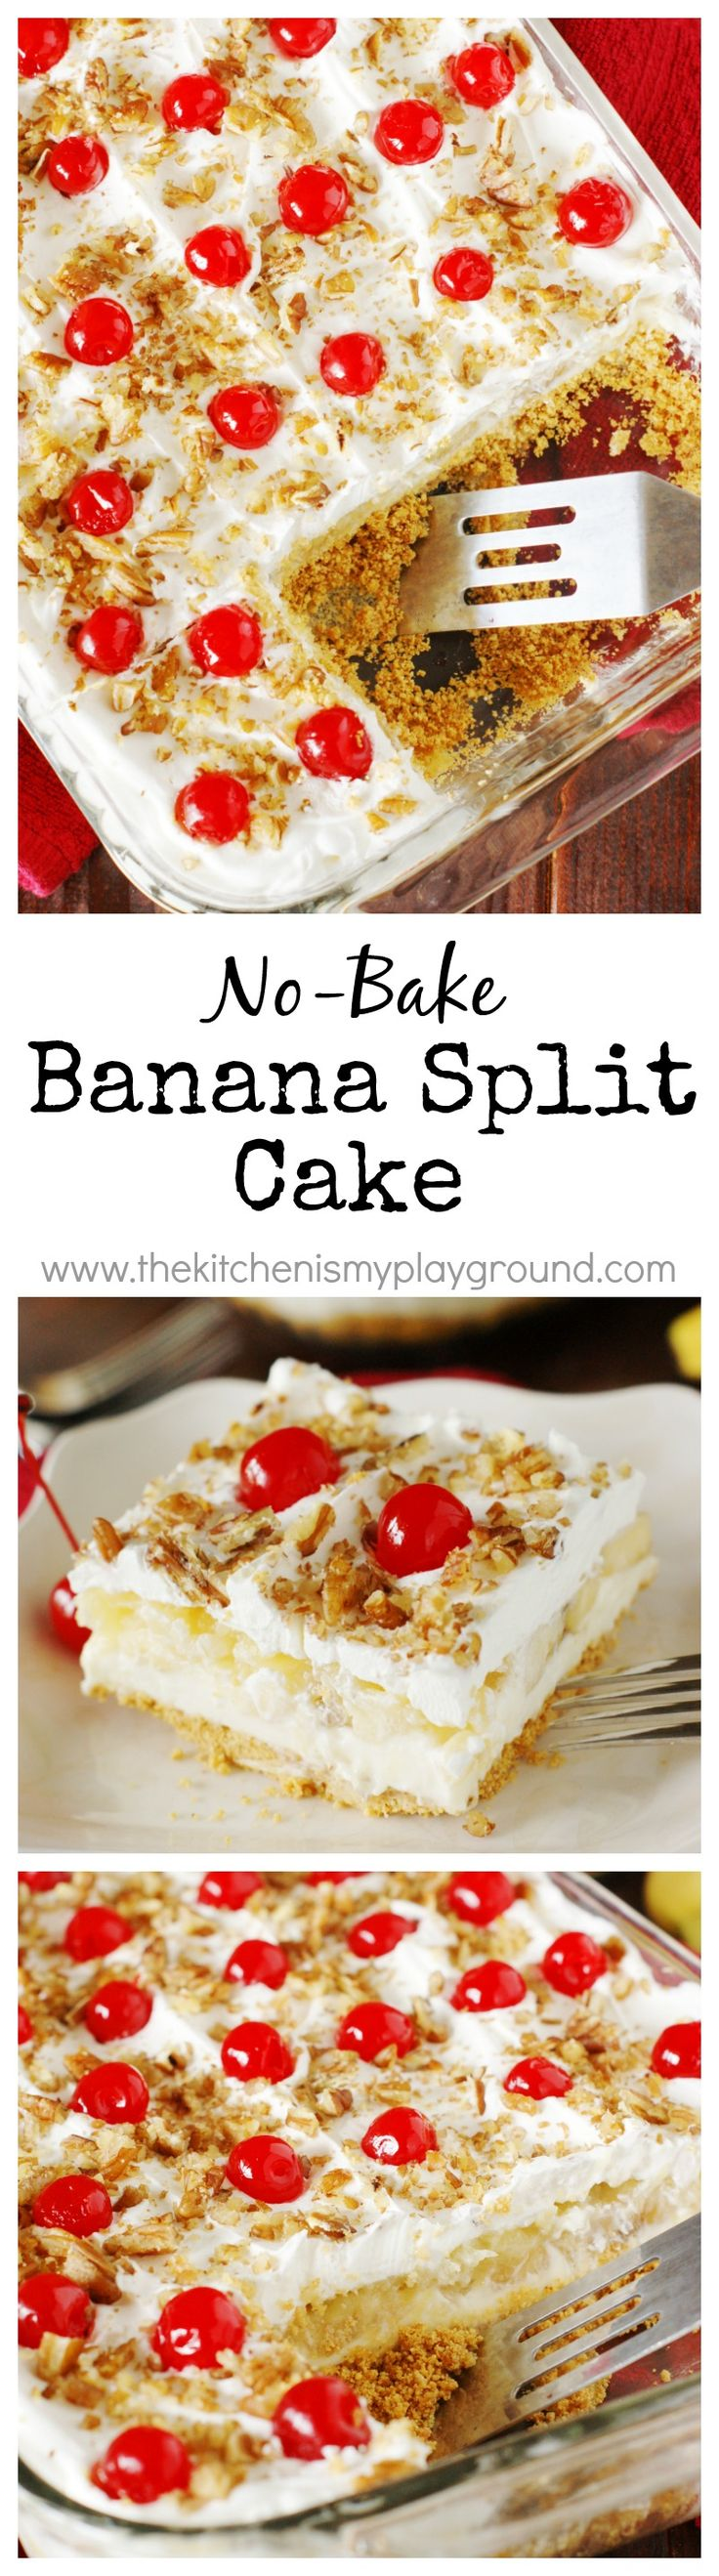 No-Bake Banana Split Cake ~ All the fabulous flavors of a scrumptiously melty banana split sundae, in an easy to prepare no-bake dessert!   www.thekitchenismyplayground.com